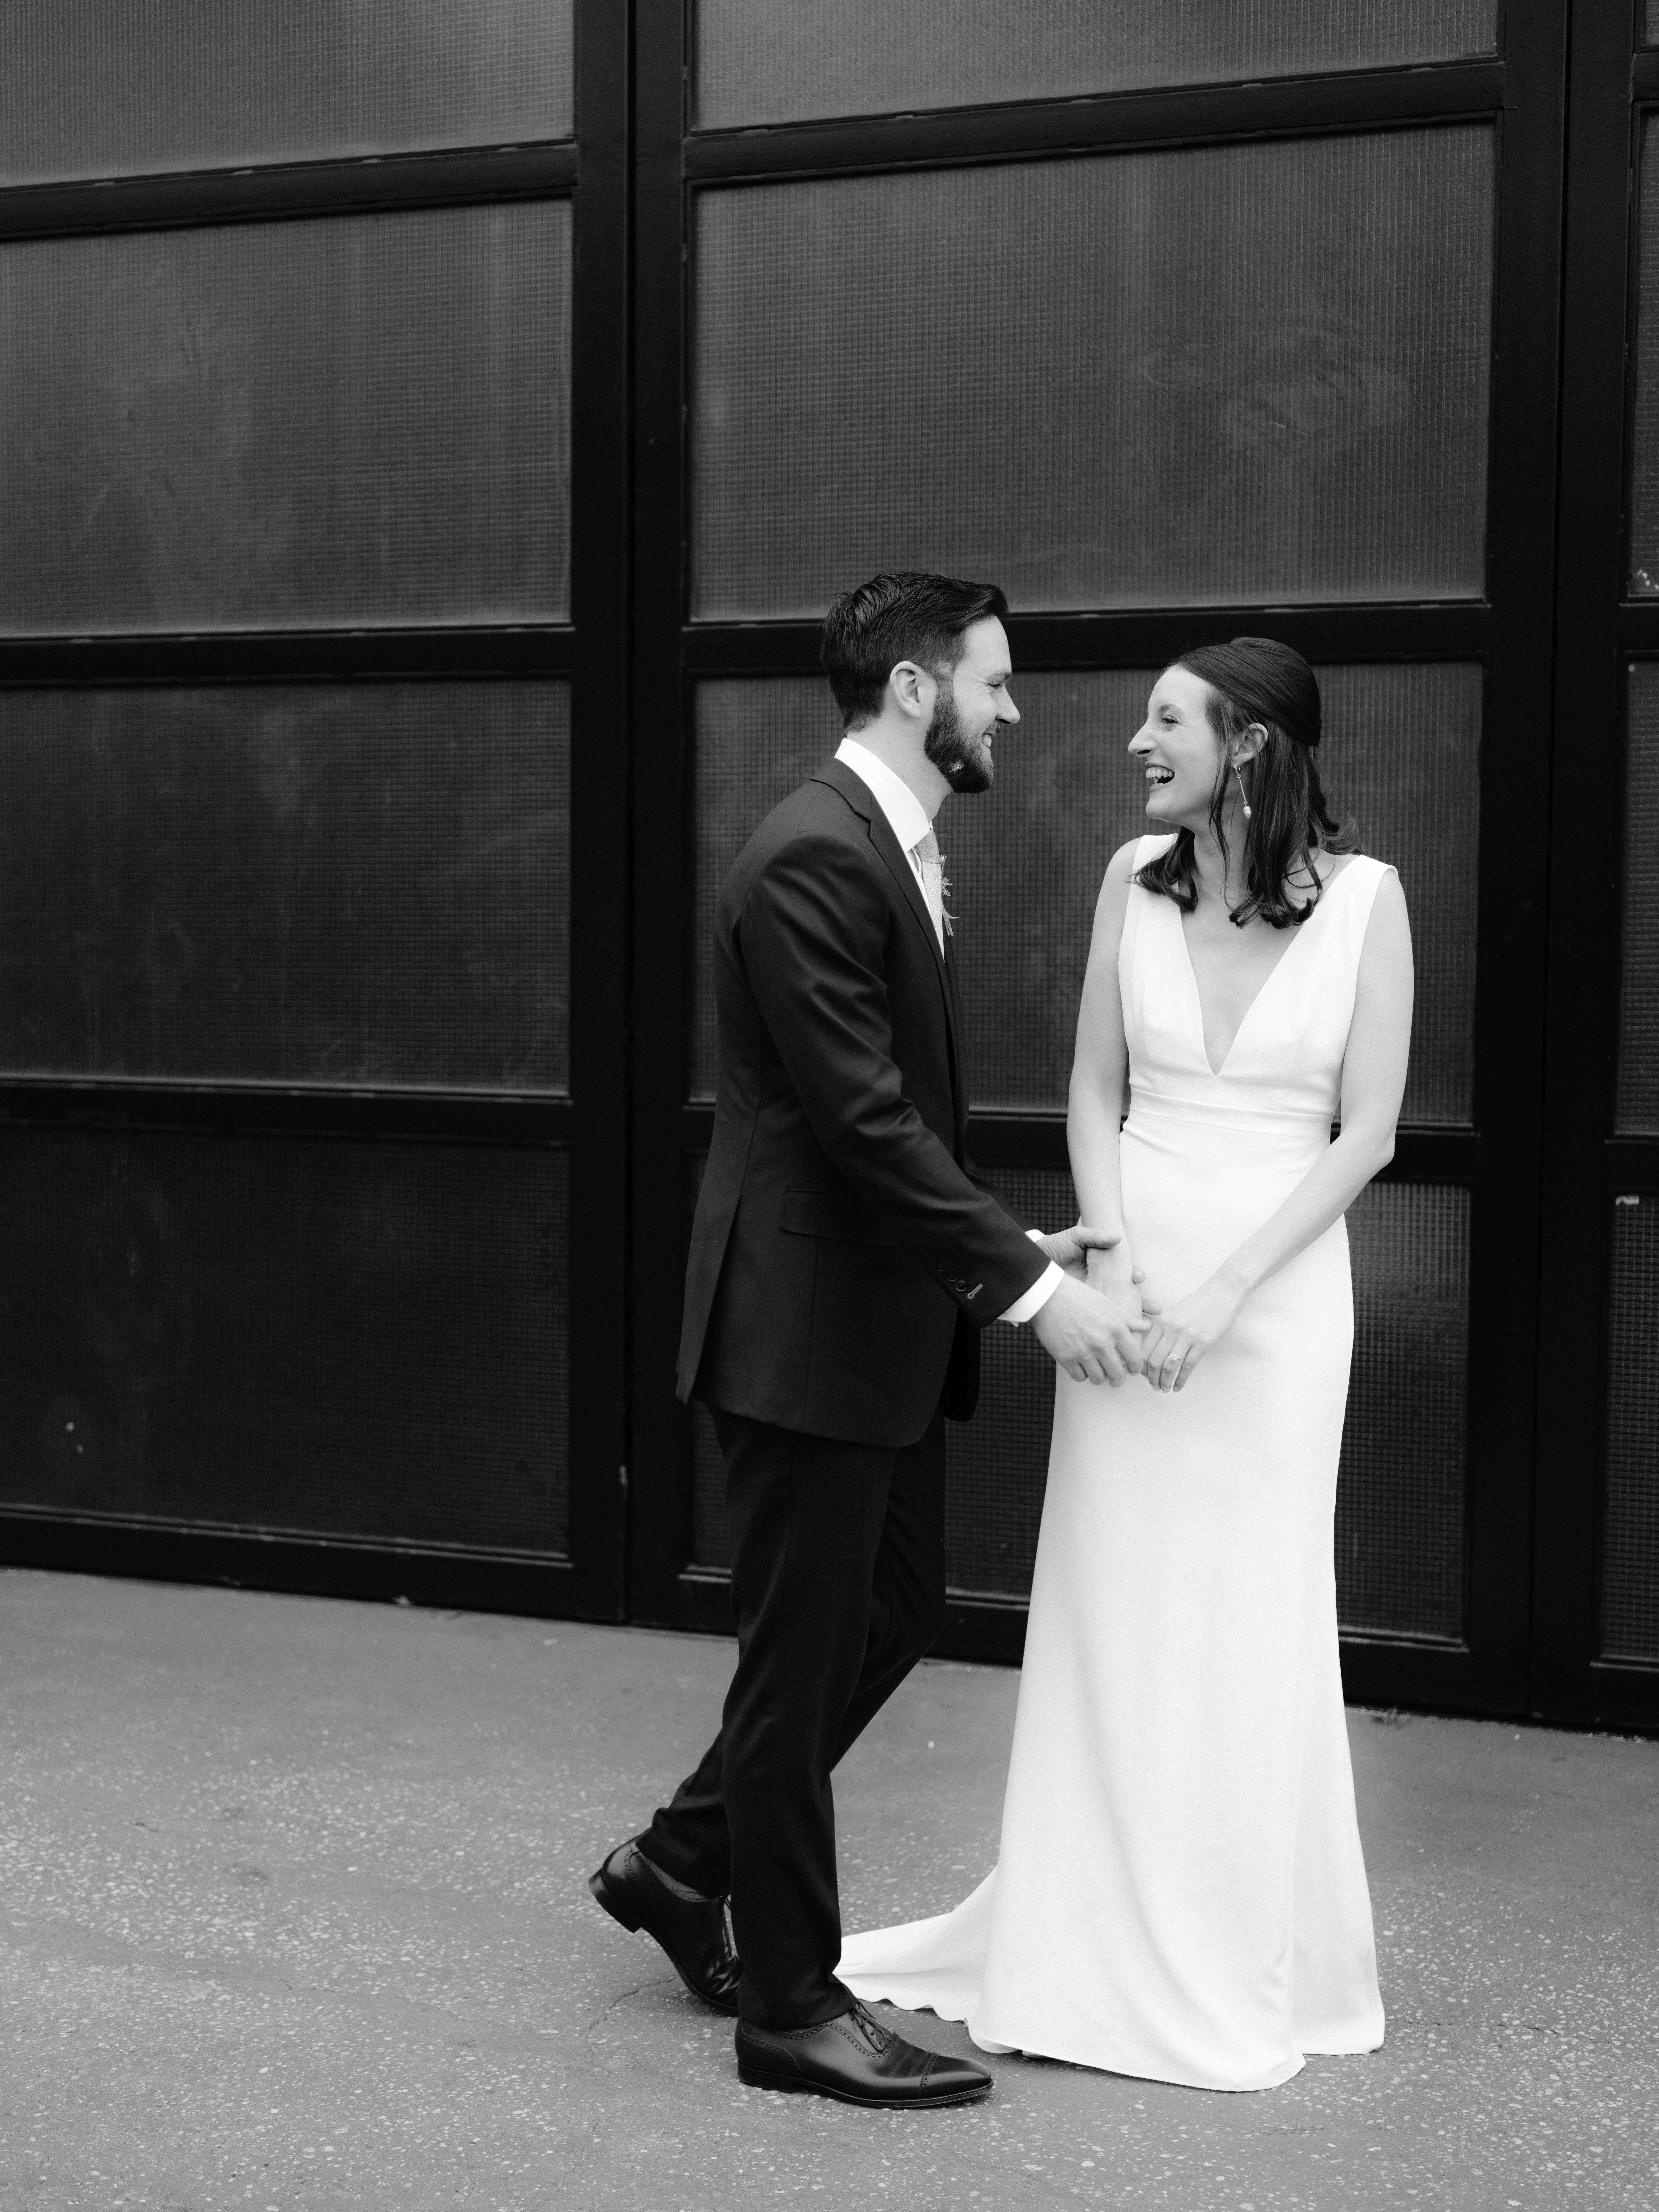 Best-501-Union-Wedding-Photography-Brooklyn-New-York8